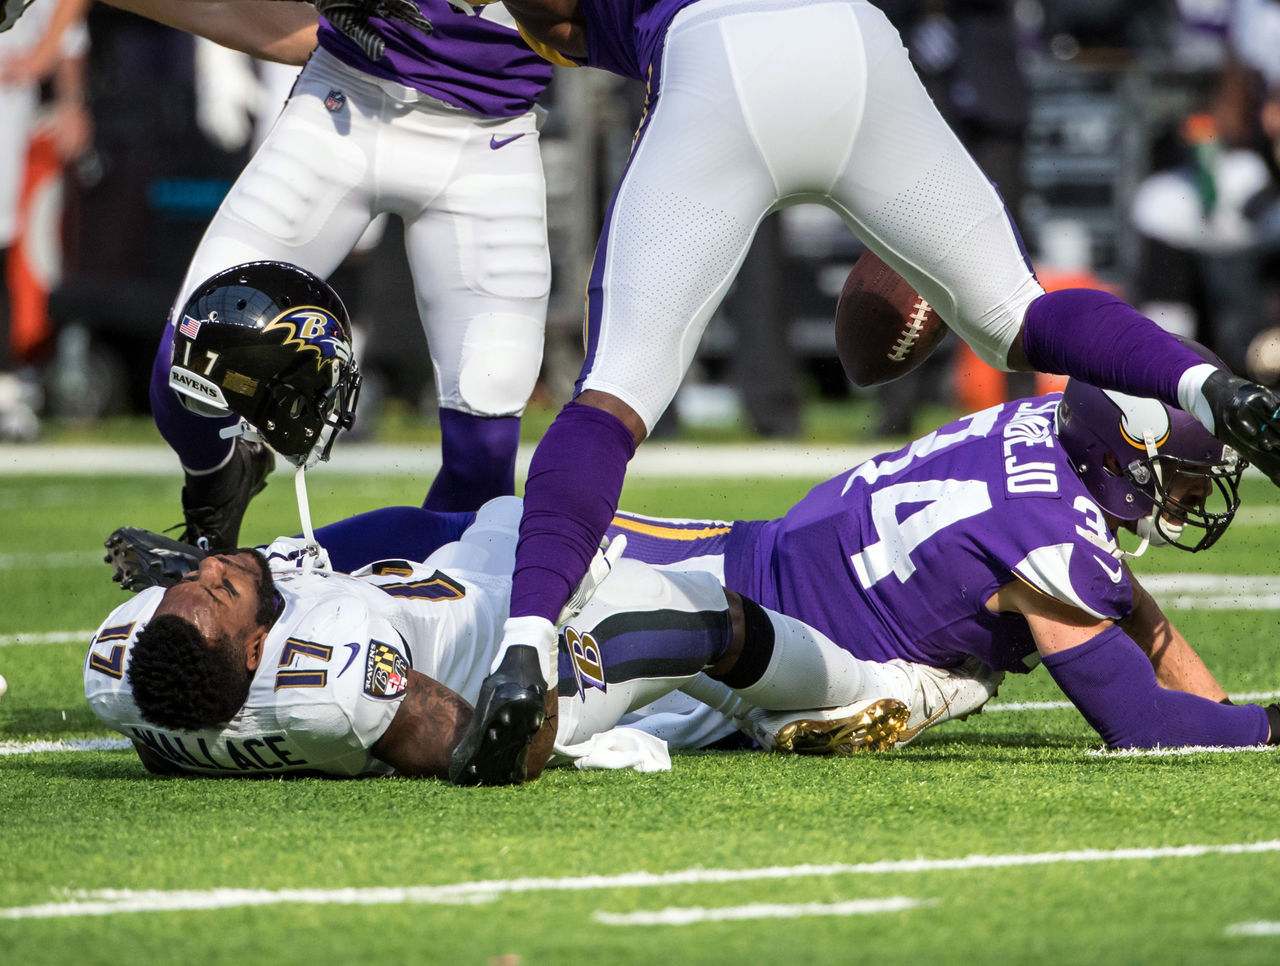 Cropped 2017 10 22t174153z 518250459 nocid rtrmadp 3 nfl baltimore ravens at minnesota vikings